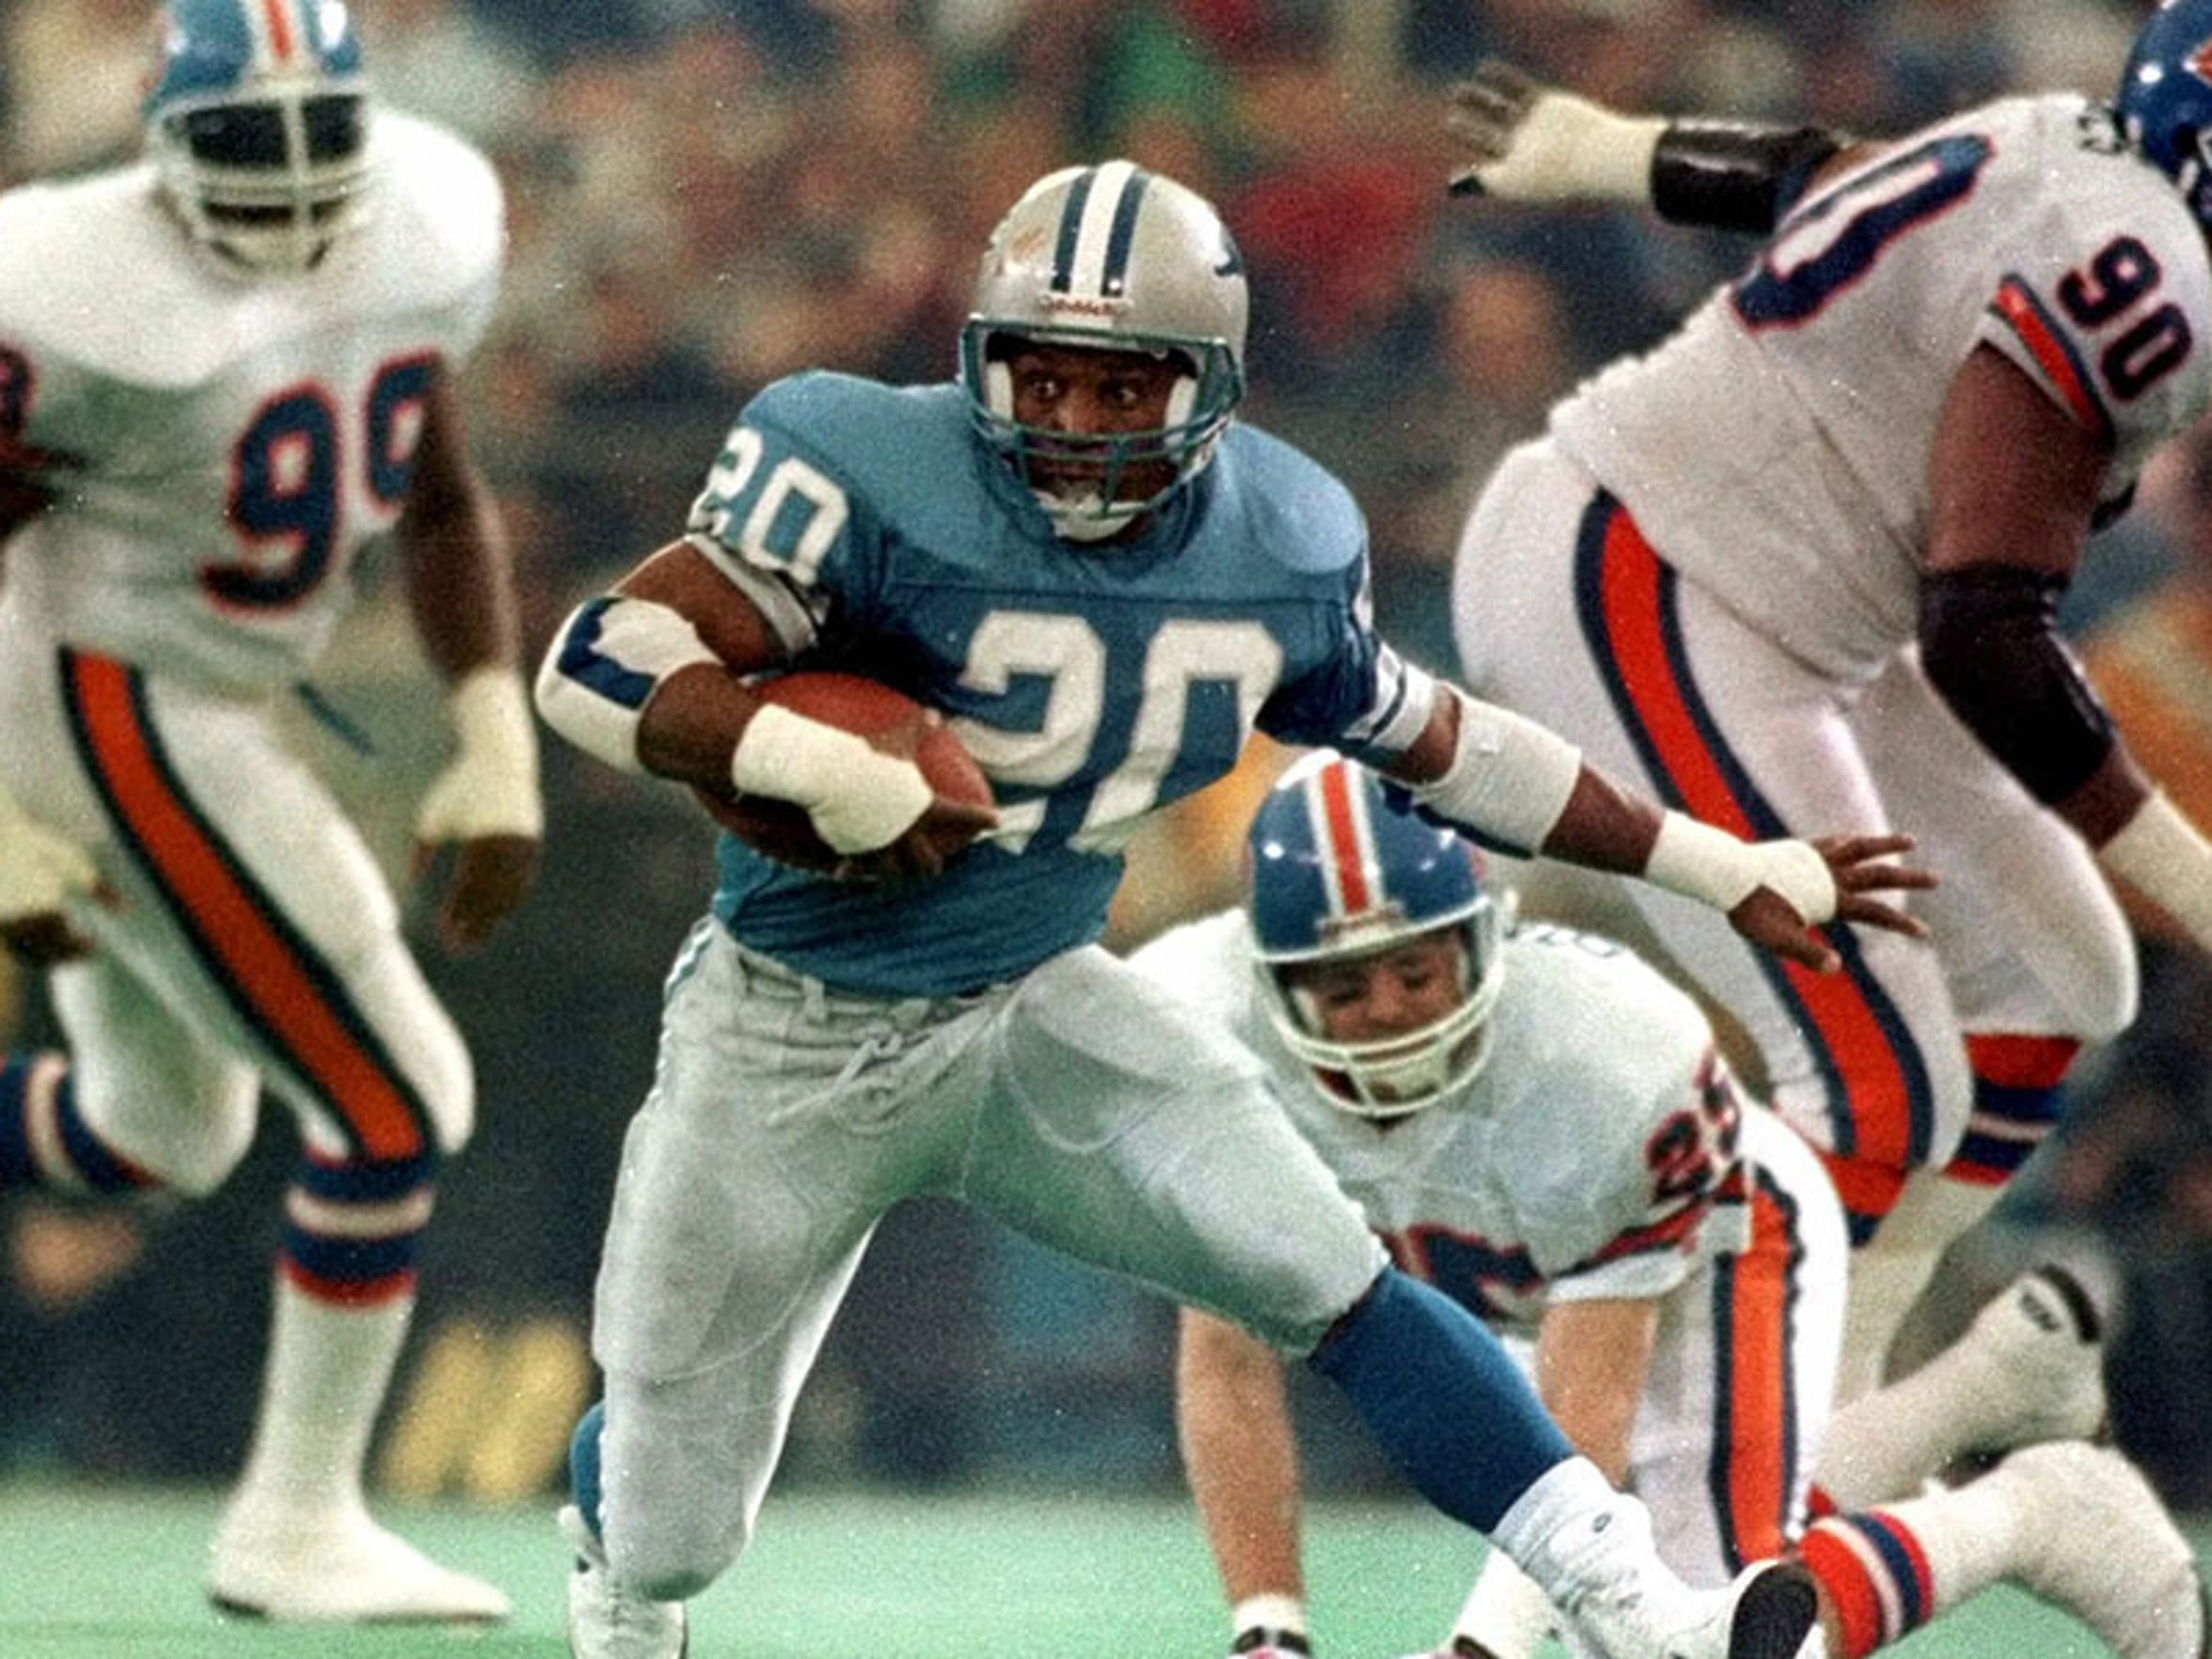 The 1 thing Barry Sanders would tell this year's NFL Draft picks